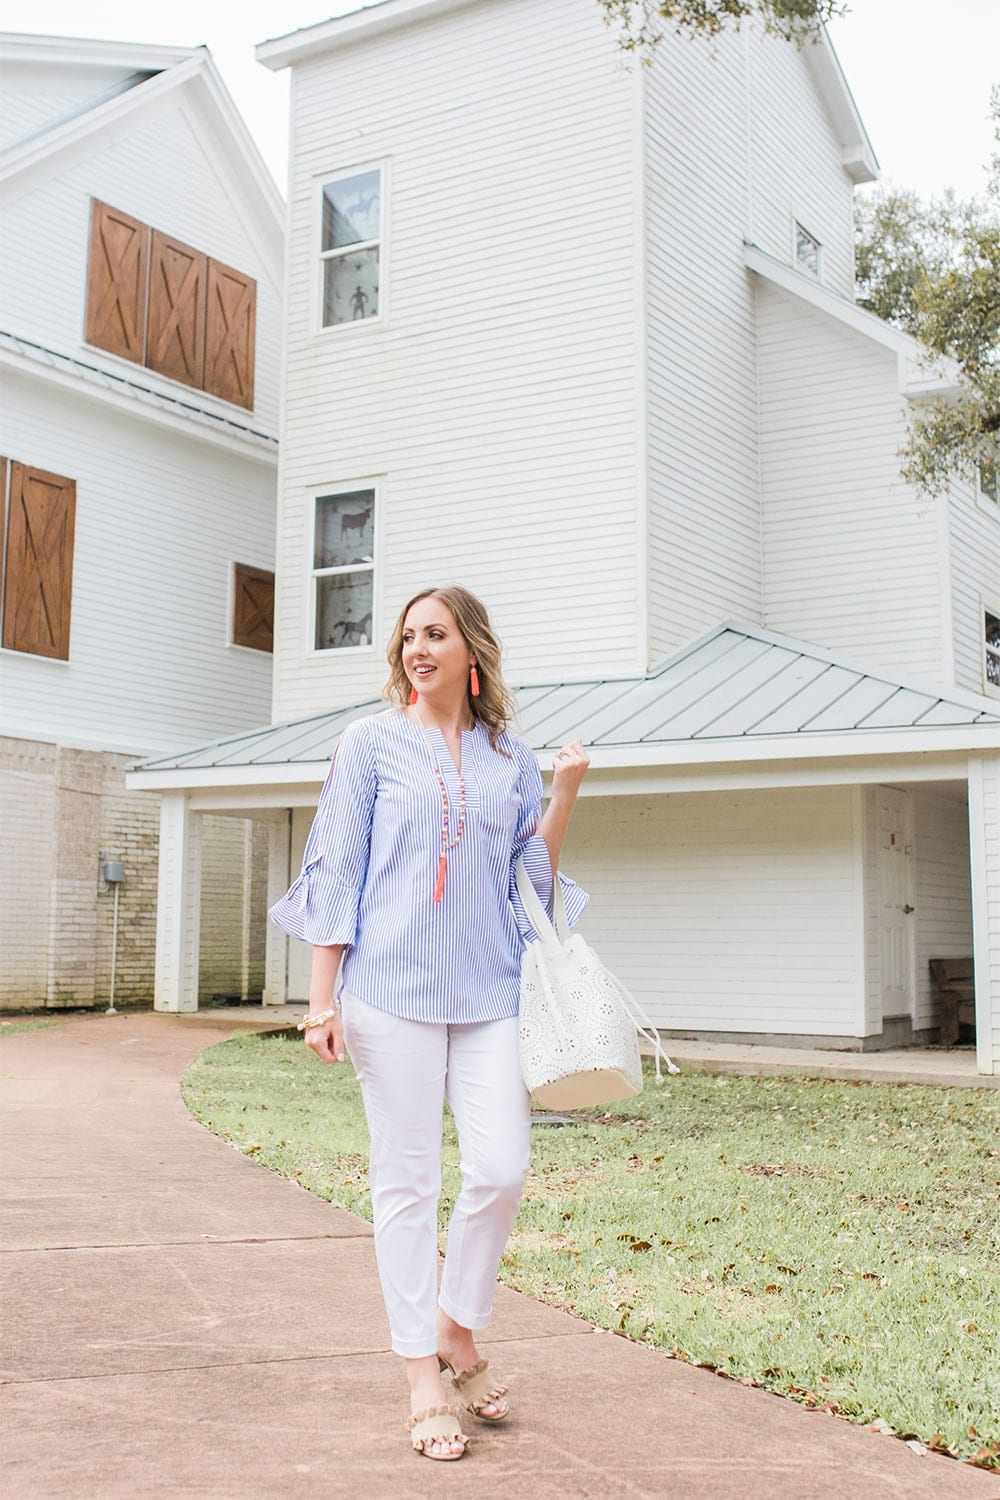 Houston blogger Meg O. on the Go shares a perfect spring outfit from the Avon Modern Southern Belle Collection